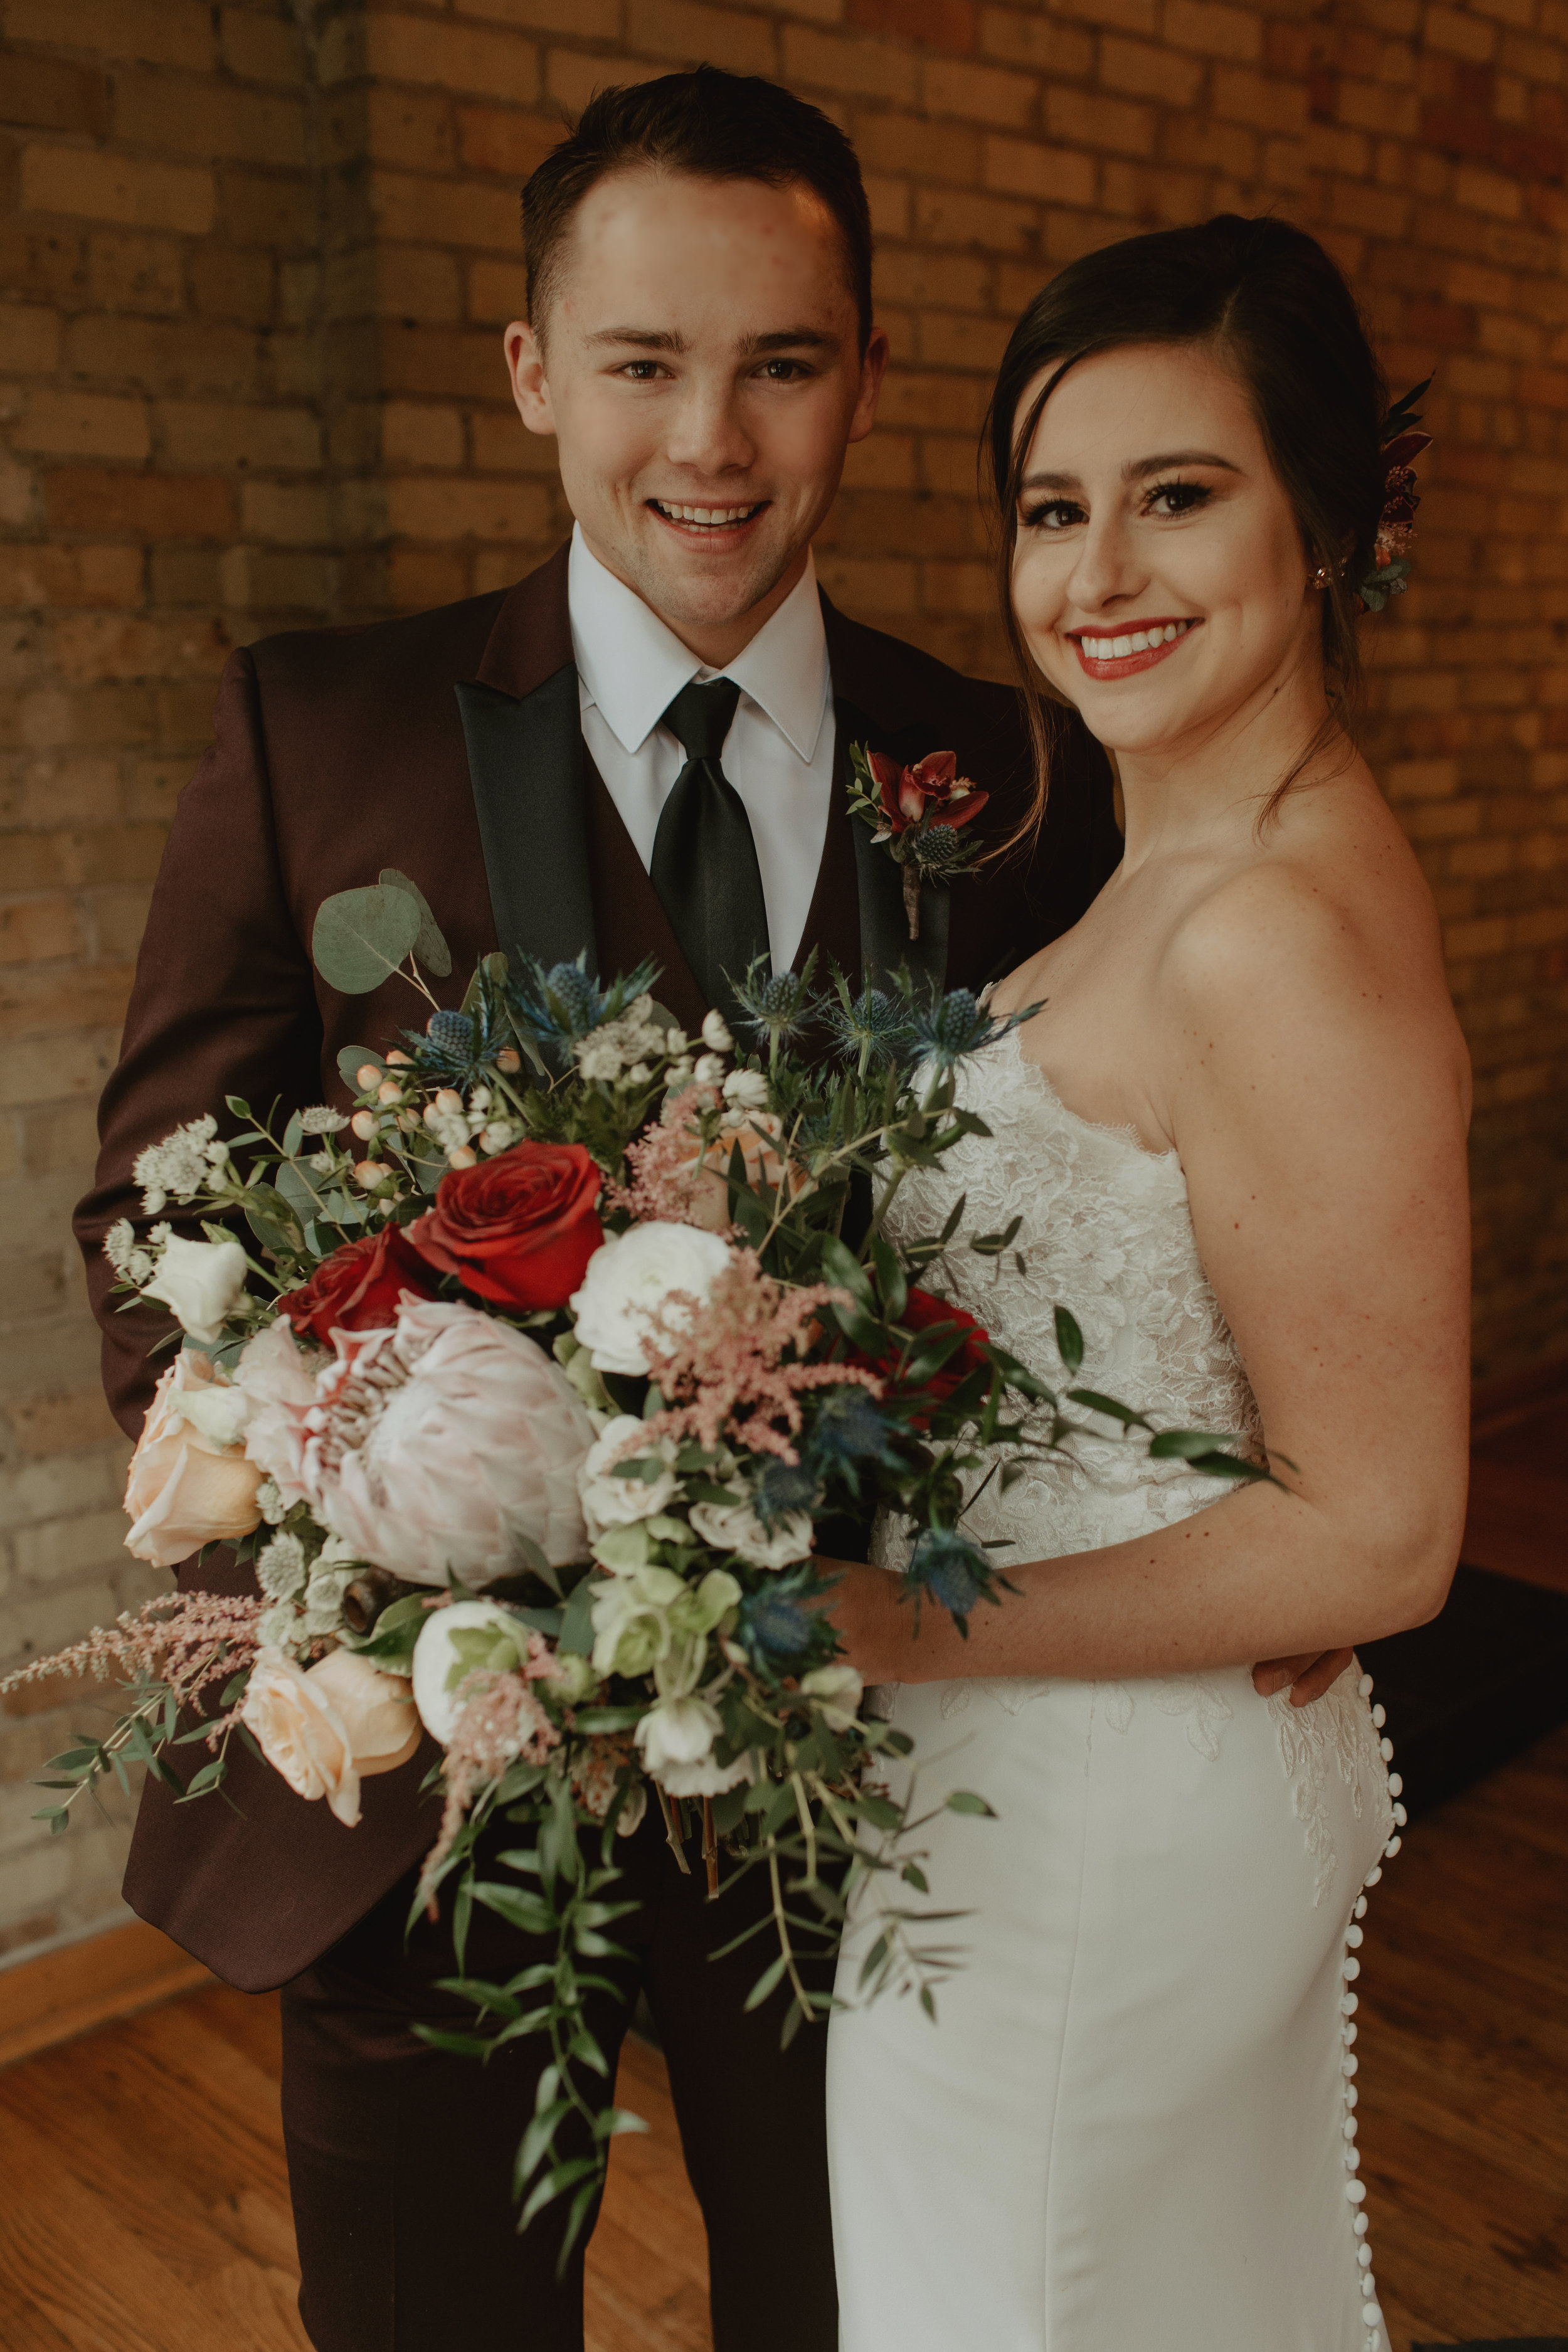 Emma and Buster Elopement - Bride and Groom Close Up Portrait - by Nikki Kate Photography.jpg